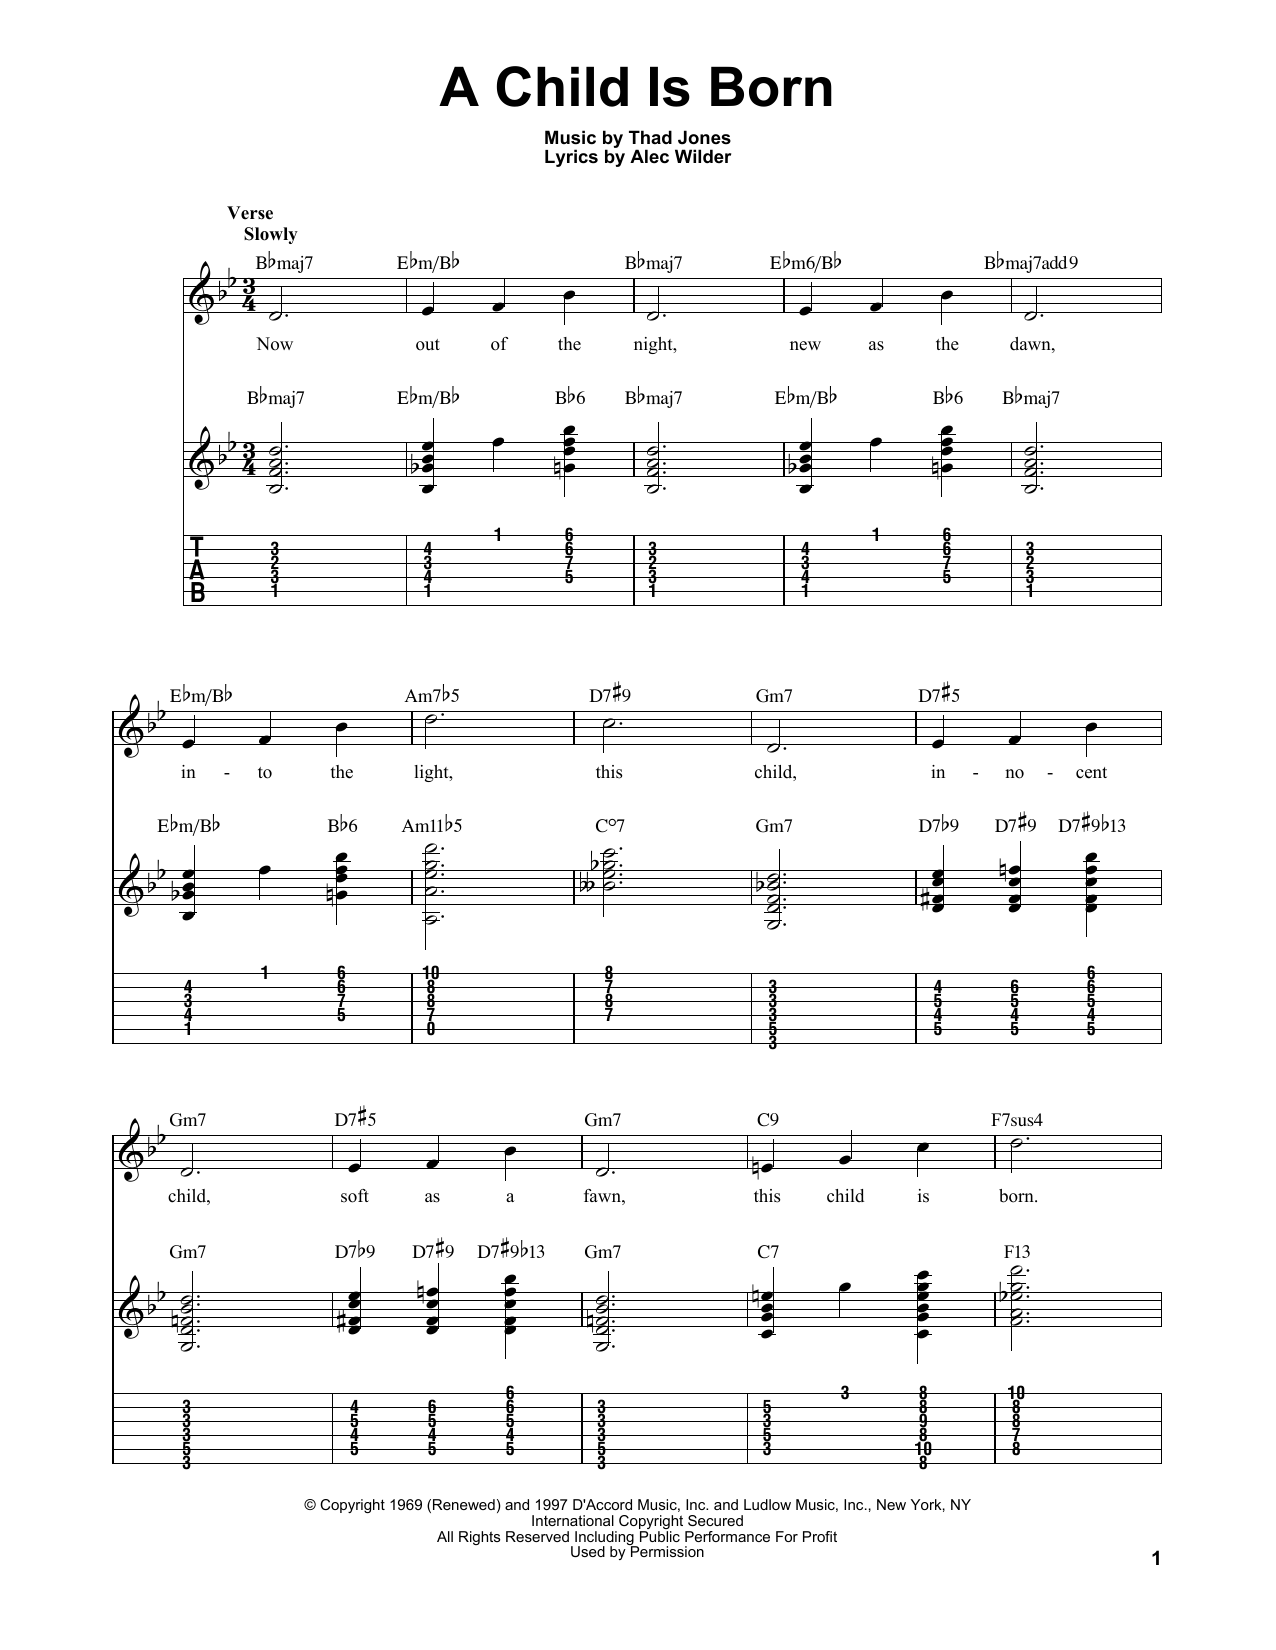 A Child Is Born Sheet Music